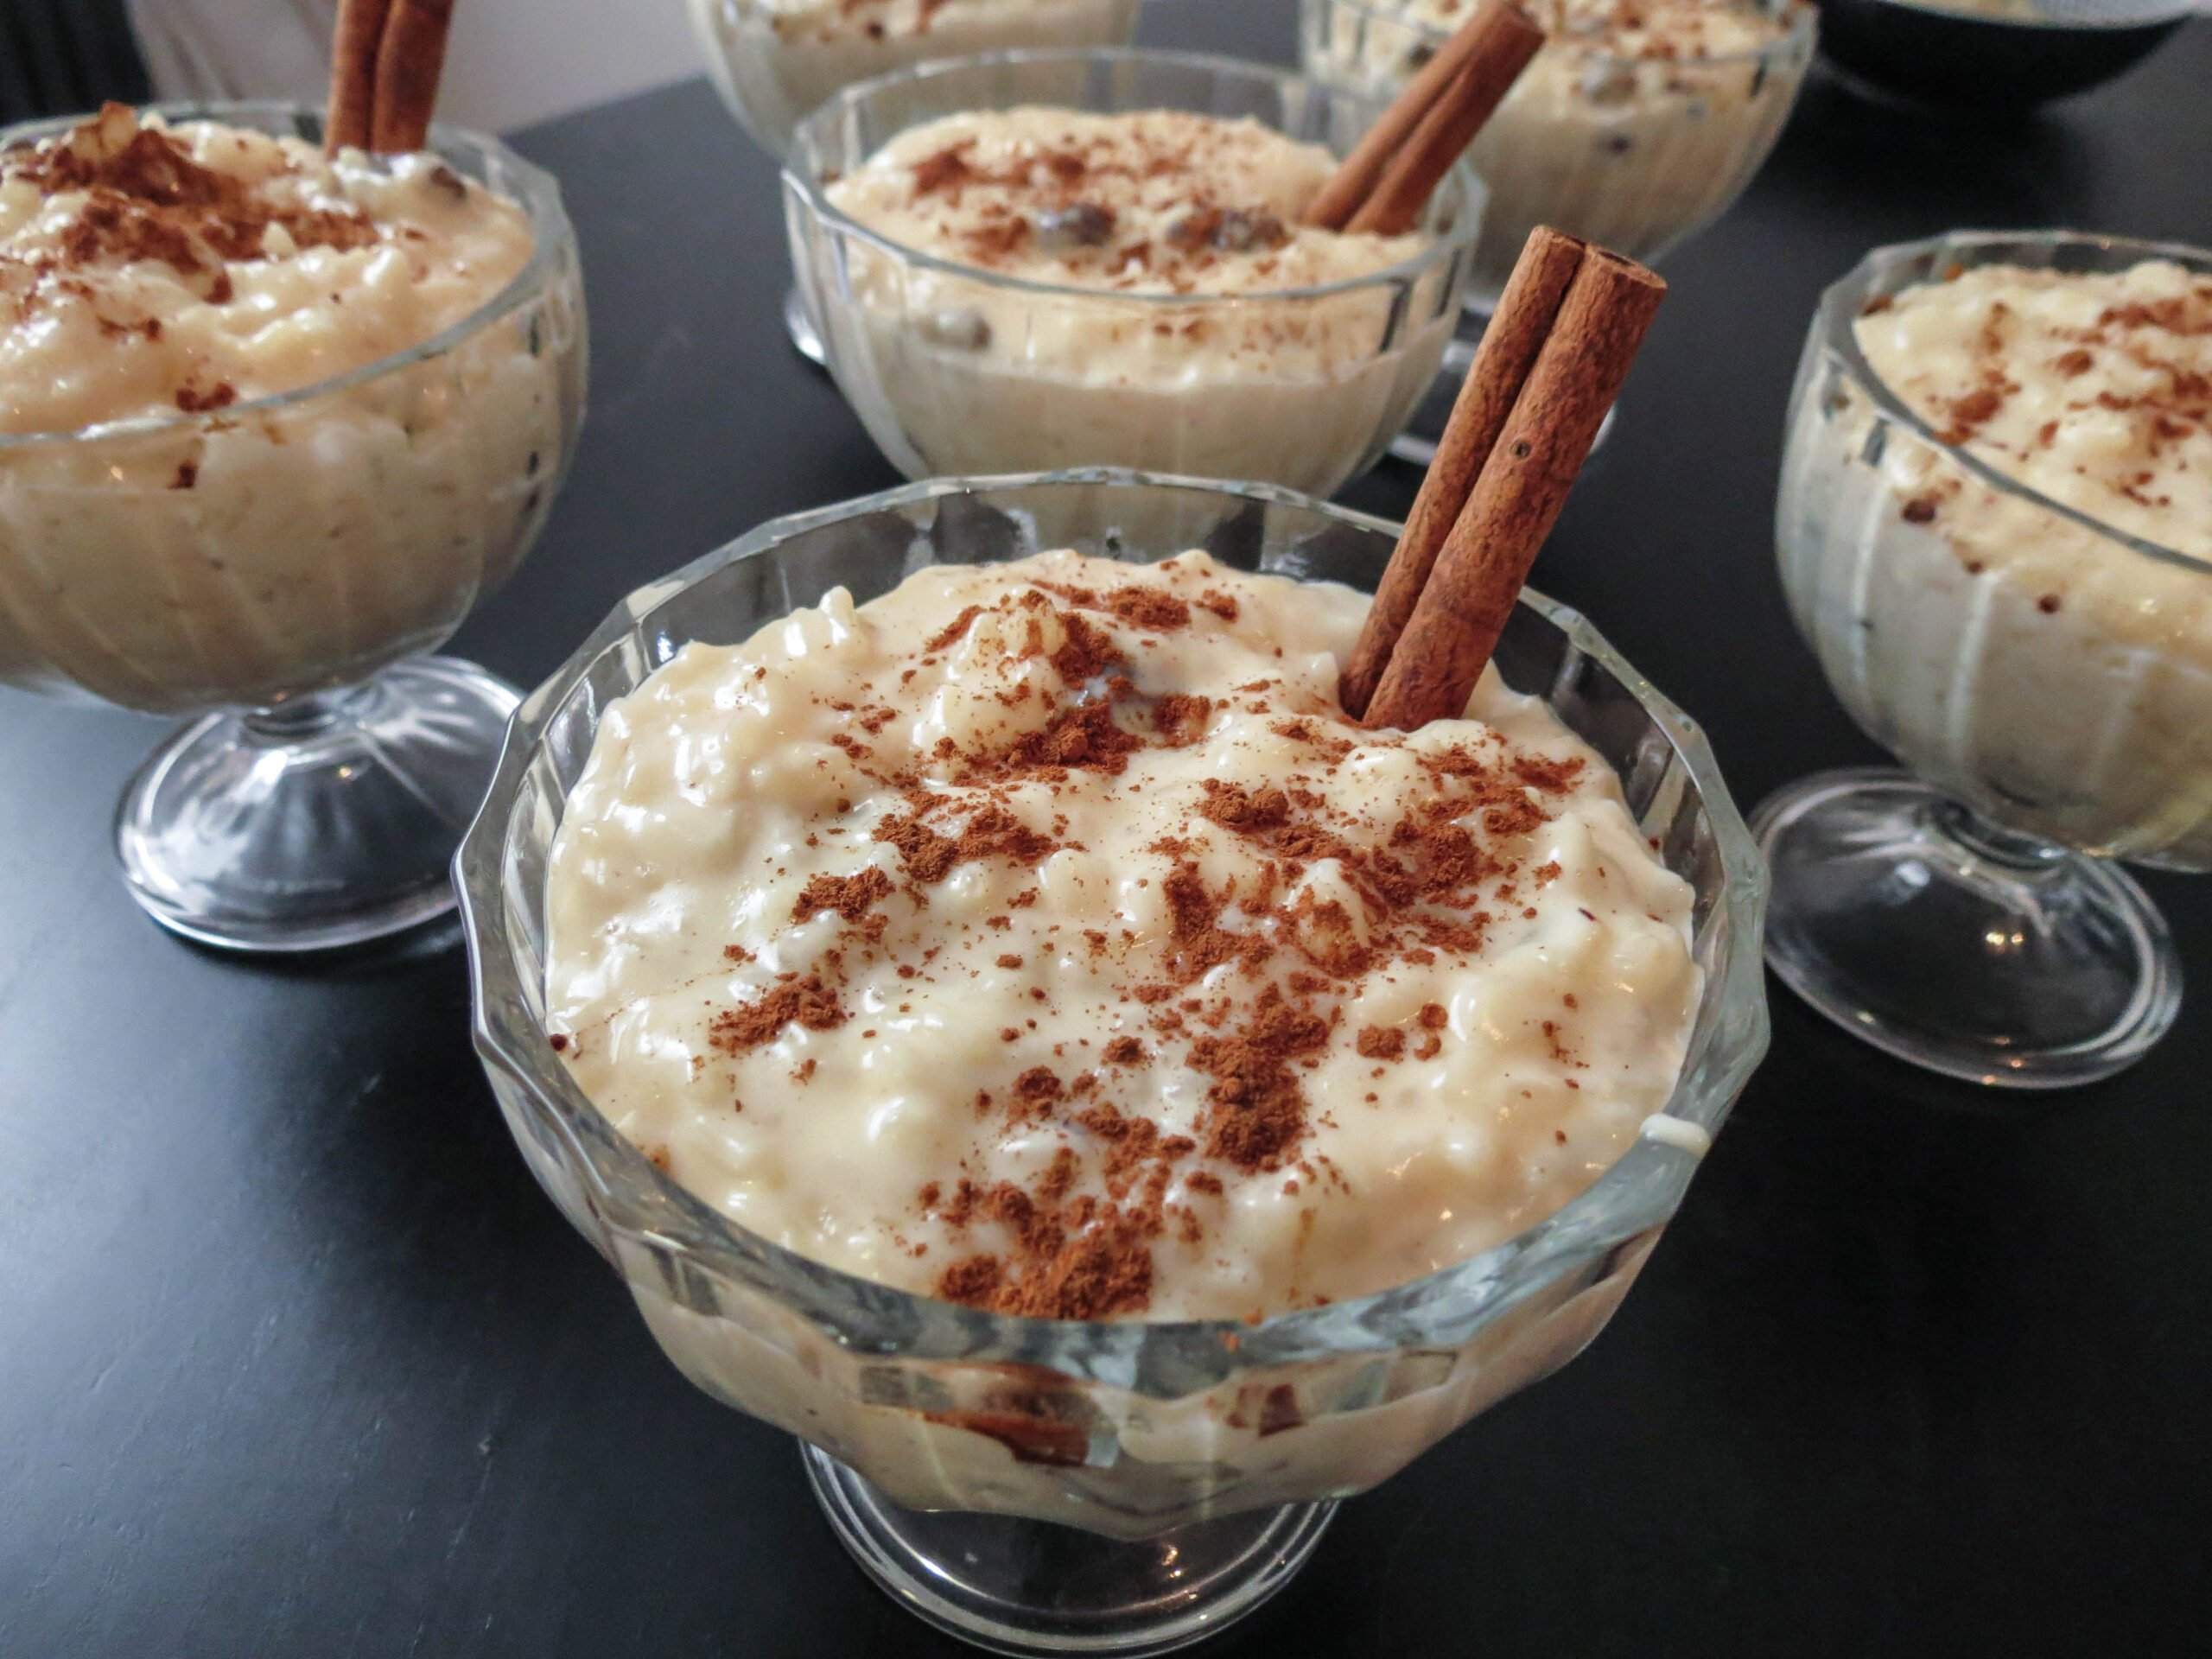 Costa rican arroz con leche rice pudding olivias cuisine arroz con leche costa rican rice pudding forumfinder Image collections